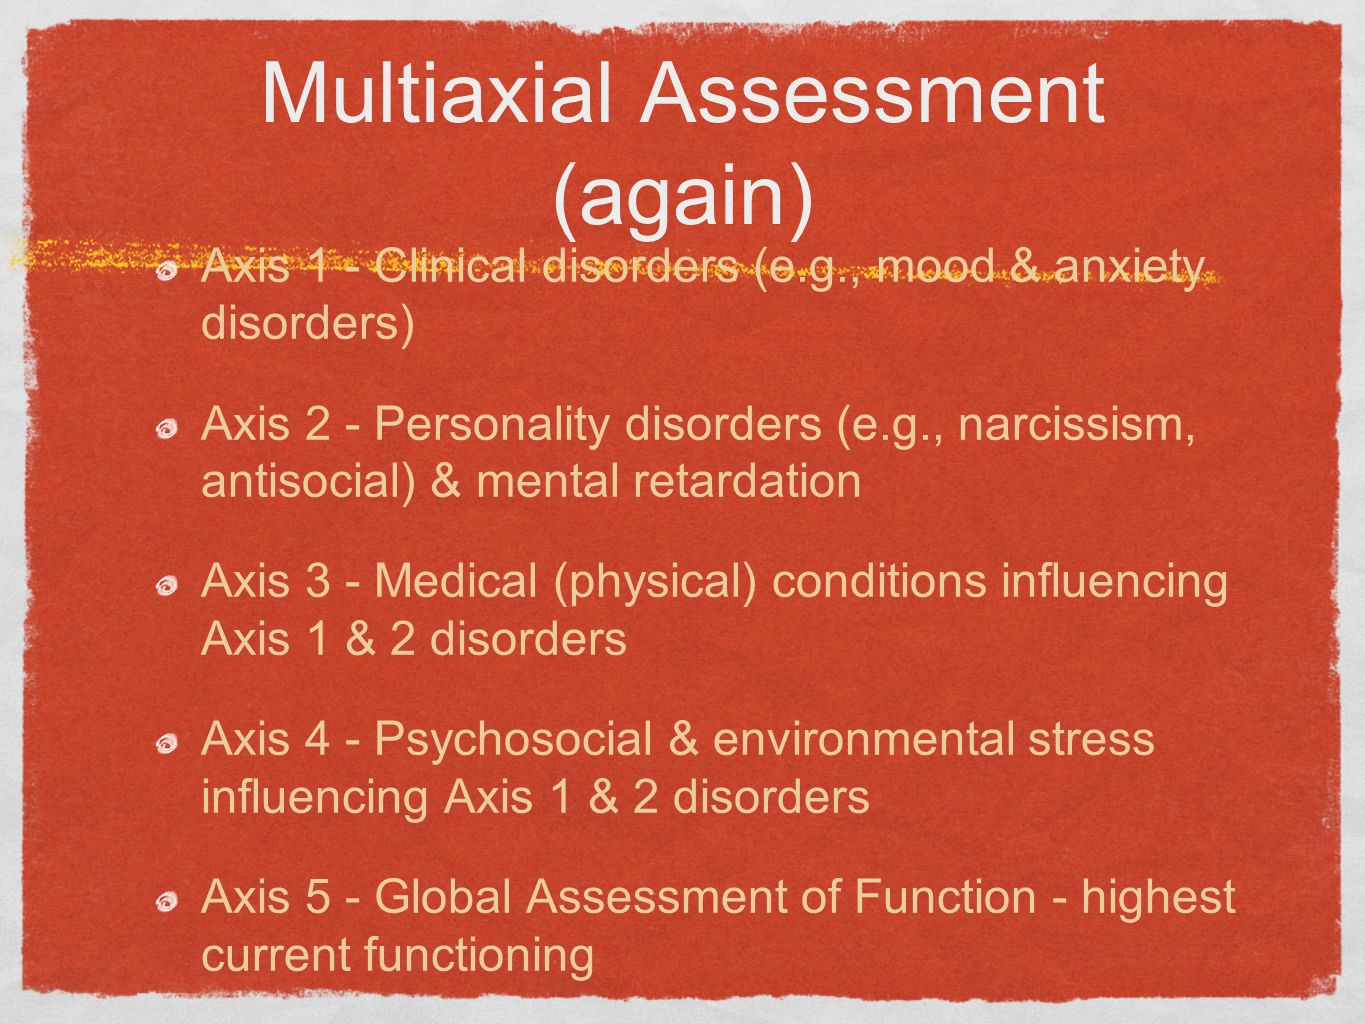 Multiaxial Assessment (again)